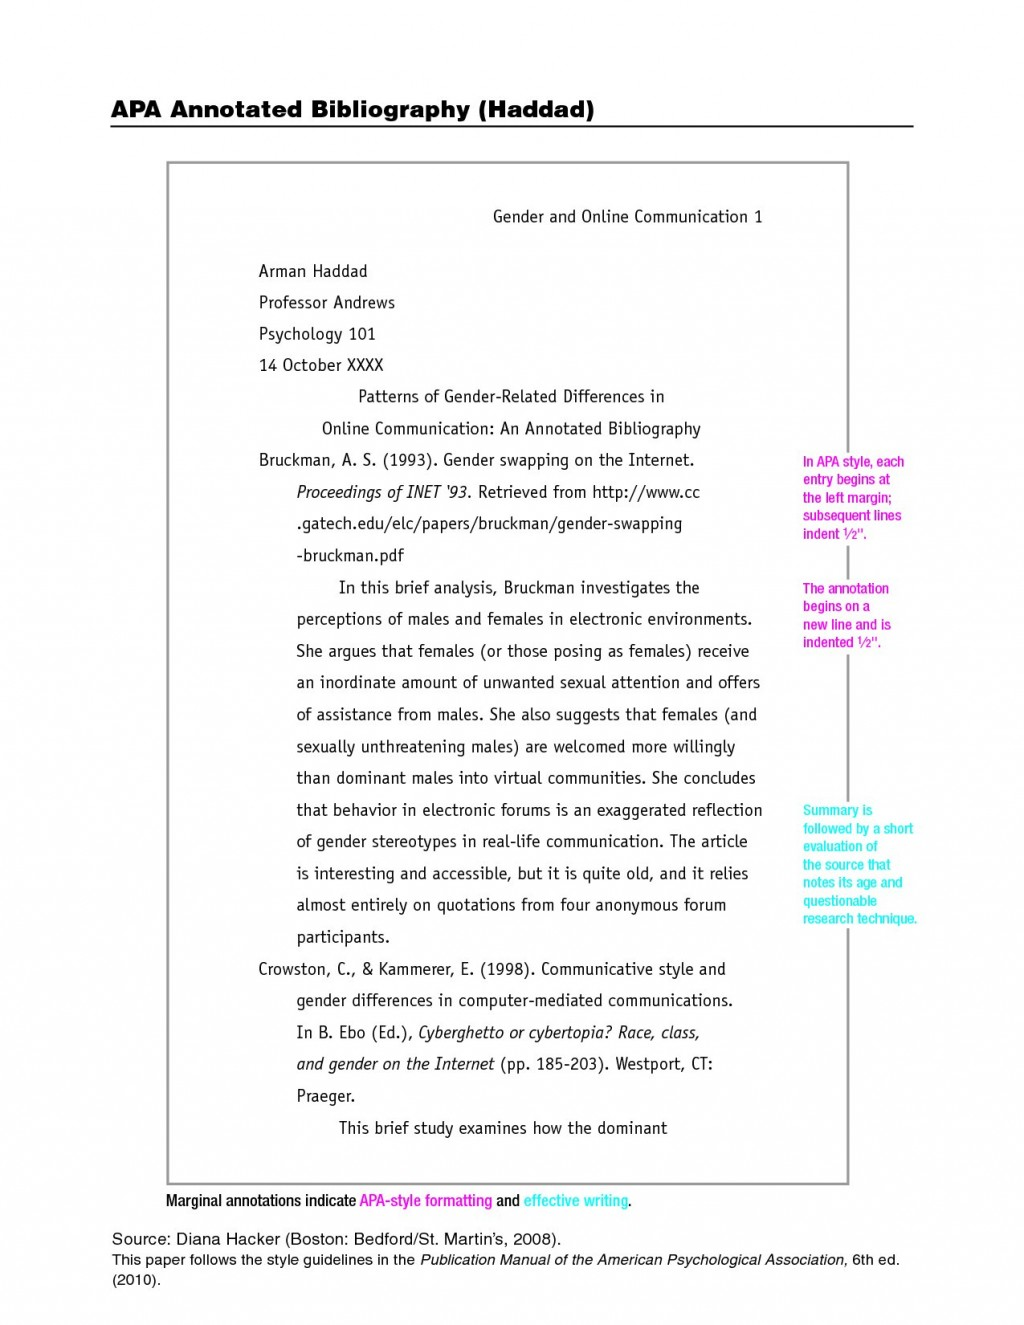 007 Essay Format Apa Template Example Essayessay In Pdf Word Gweuuh0z Breathtaking Free Outline 2010 Large